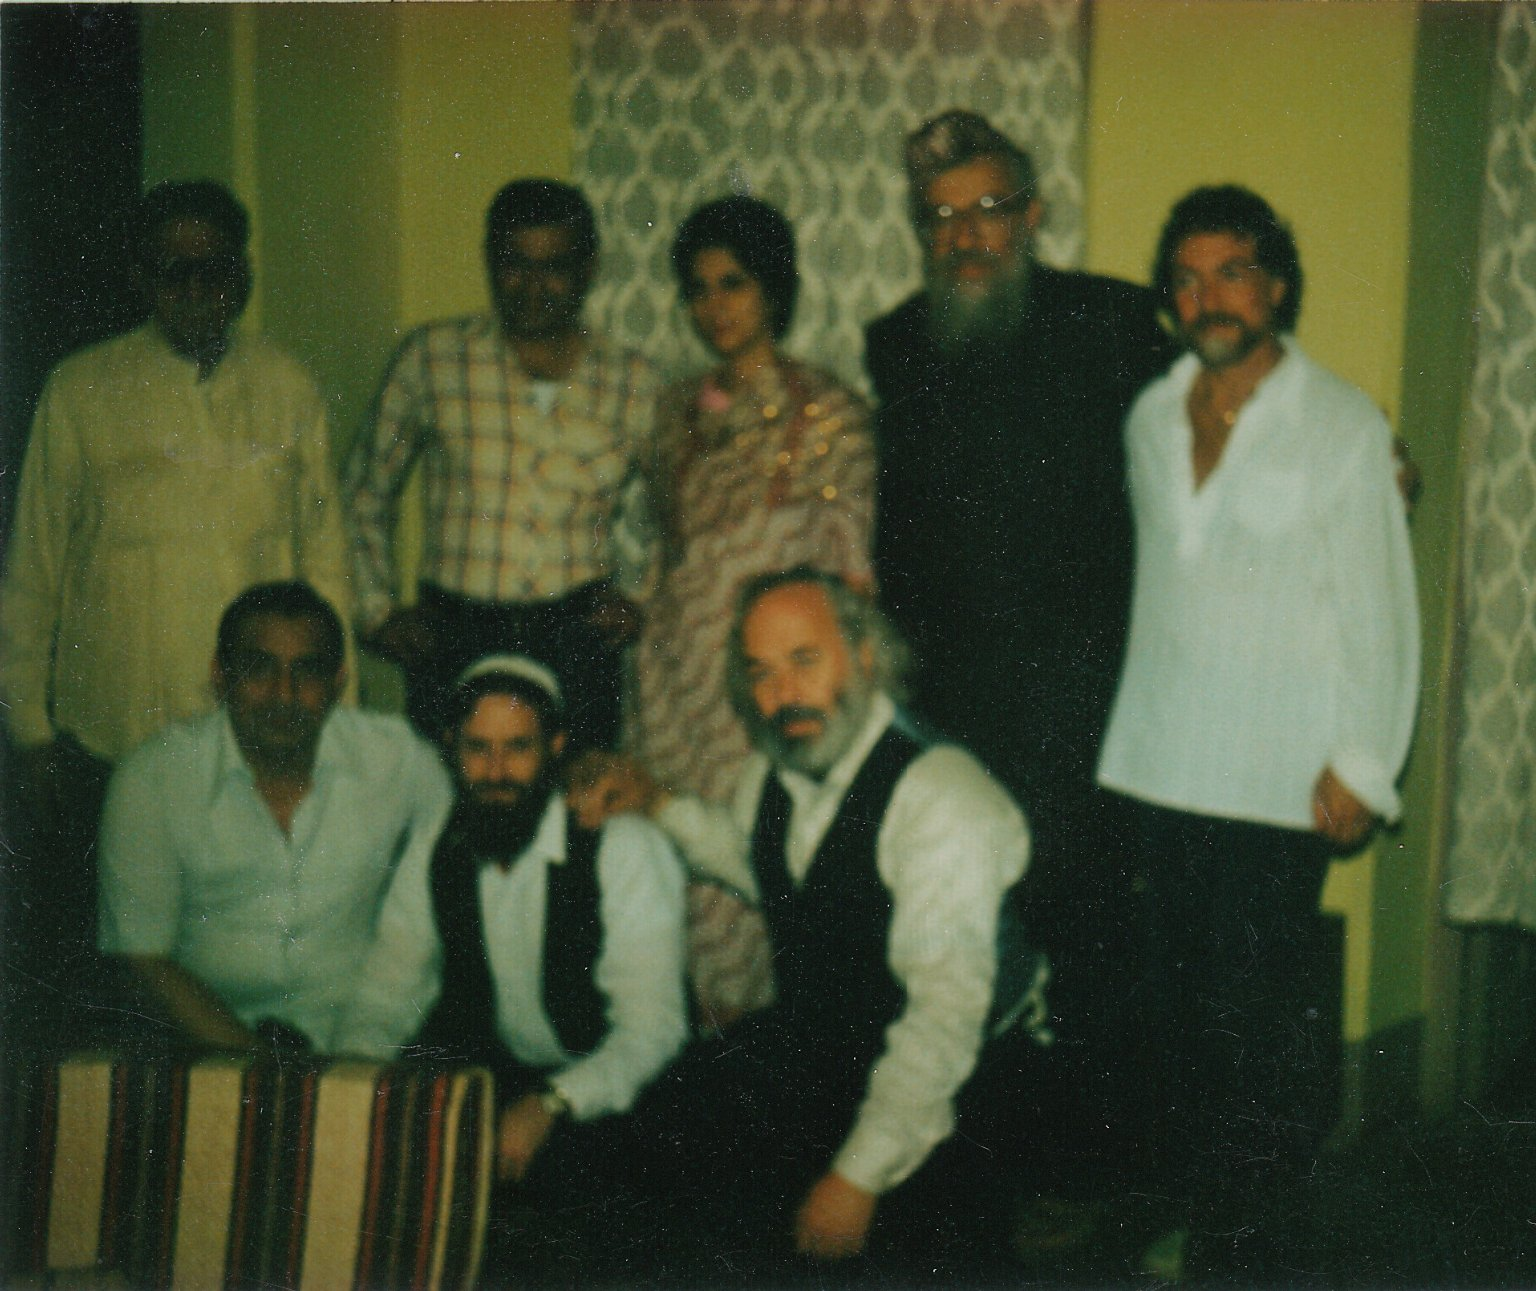 Rabbi Zalman Schachter, Paul Horn, Rabbi Shlomo Carlebach, and Rabbi David Zeller with members of the Bombay Jewish community, 1982.